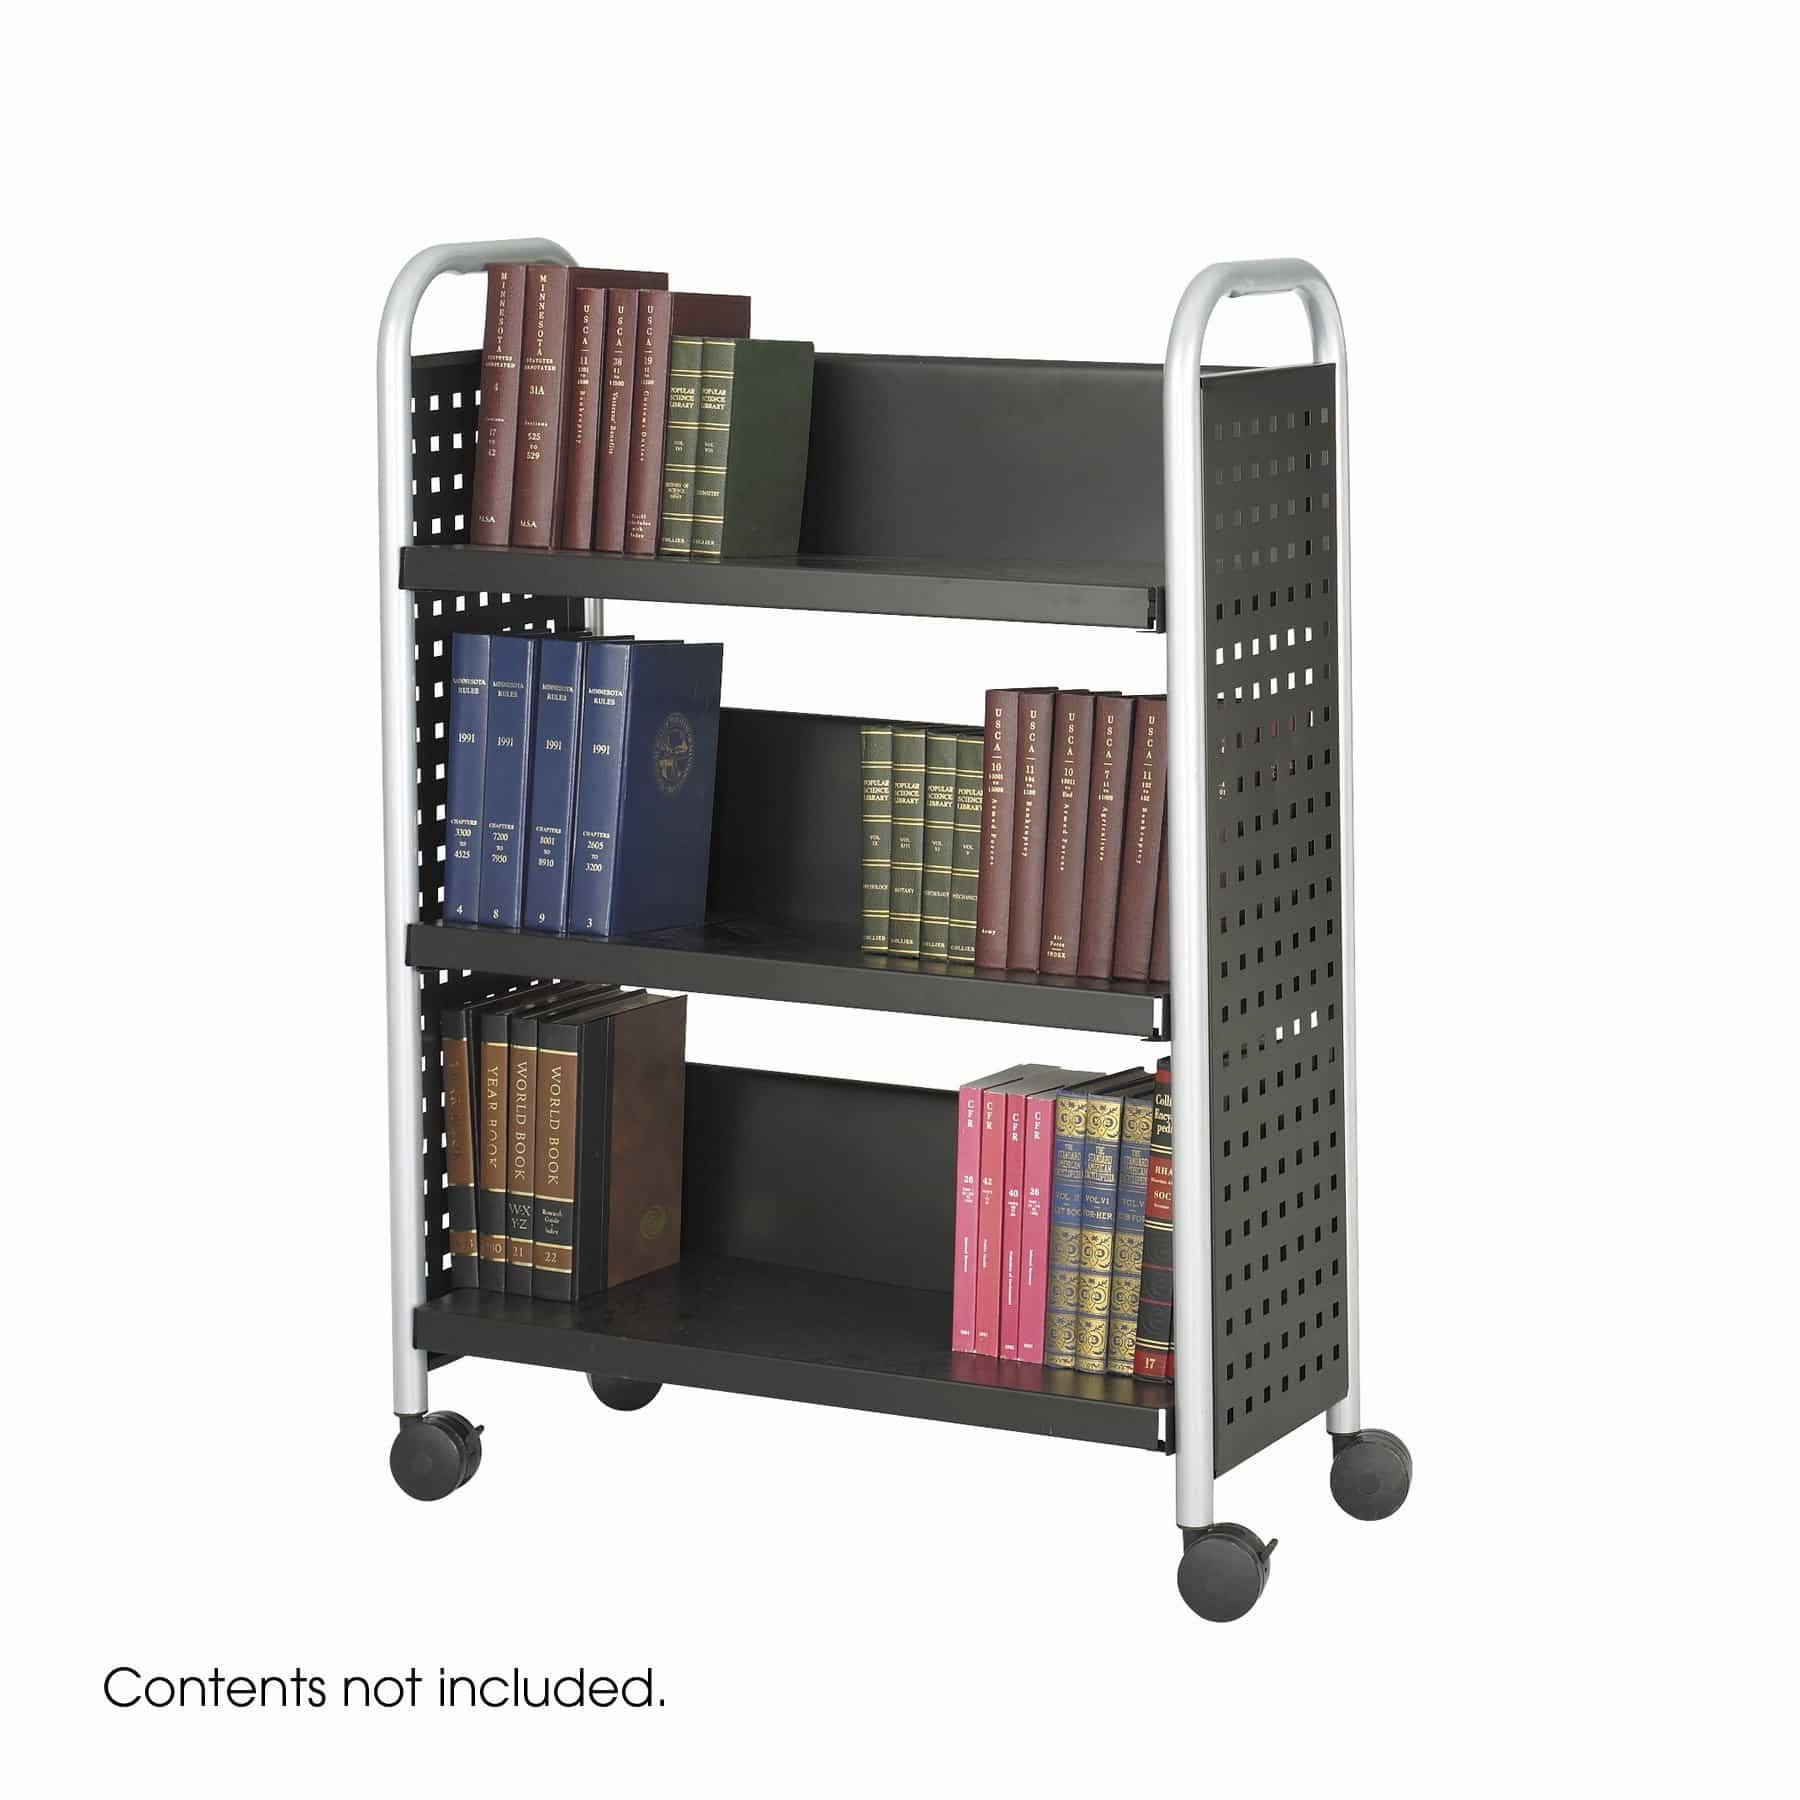 bedinhome - 5336BL Black/Silver Scoot Single-Sided powder coat finish steel legs Book Cart 3 Shelve - Safco - Utility/Book Carts